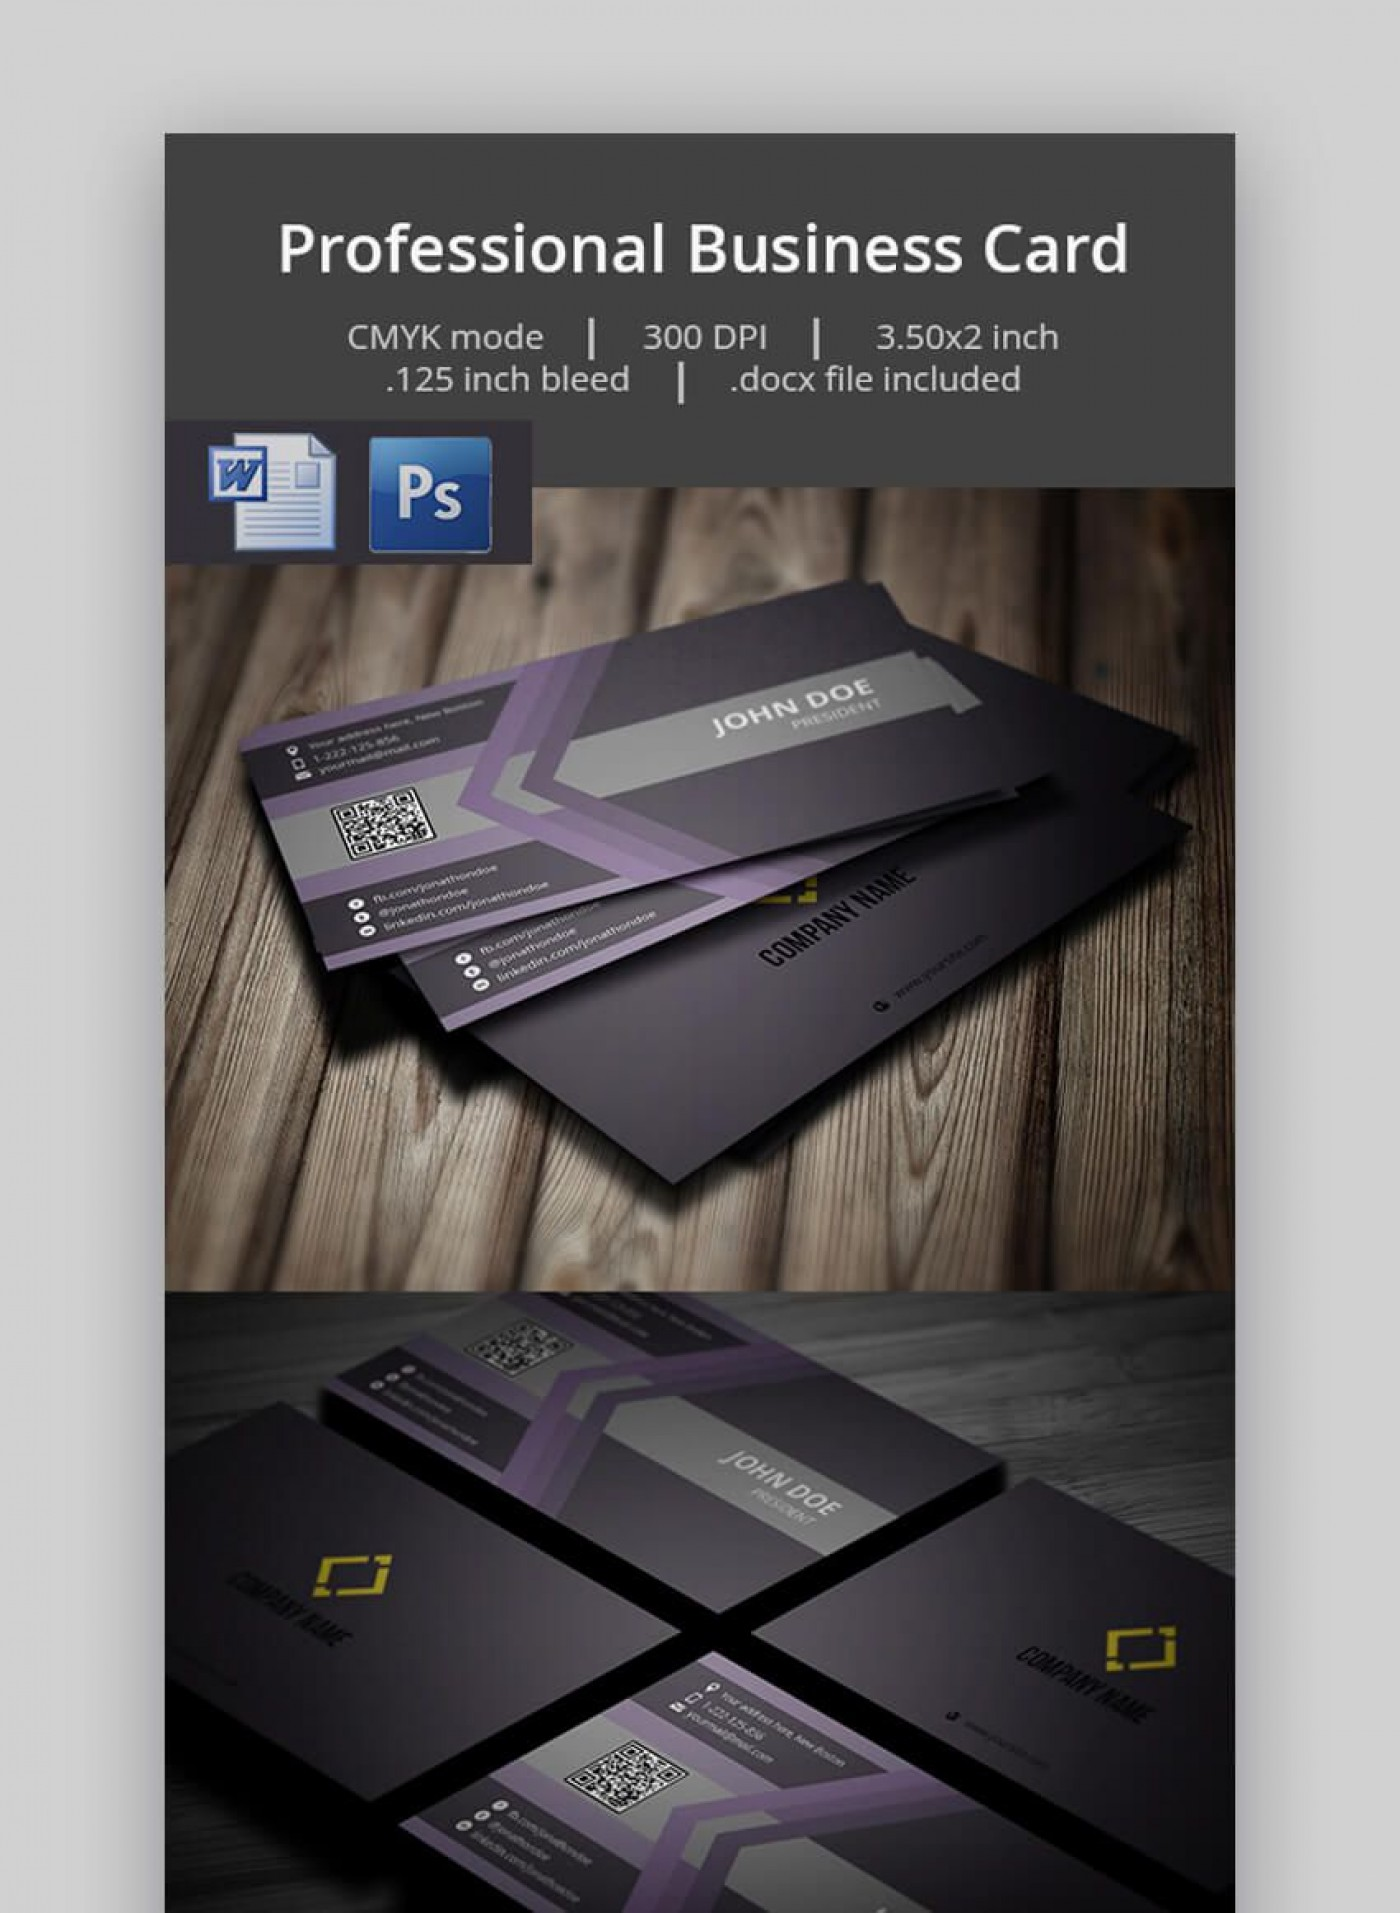 009 Formidable M Office Busines Card Template Highest Clarity  Microsoft 2010 2003 20071400